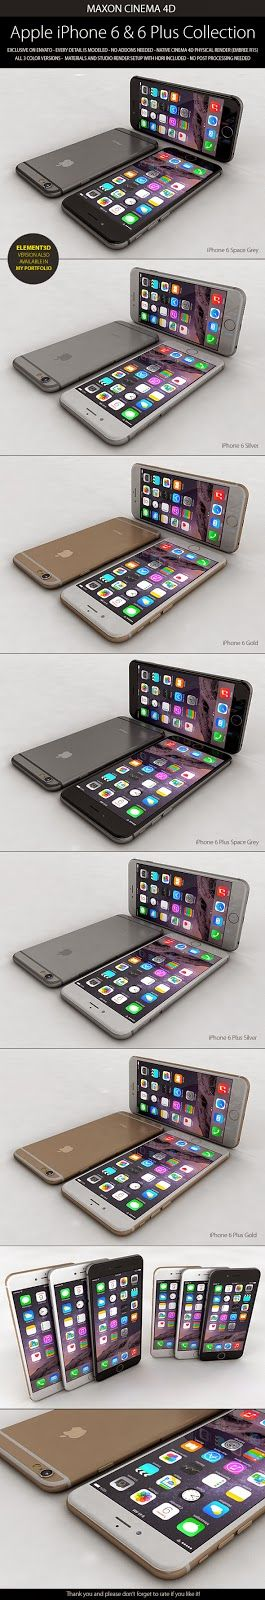 3D Model iPhone 6 & 6 Plus